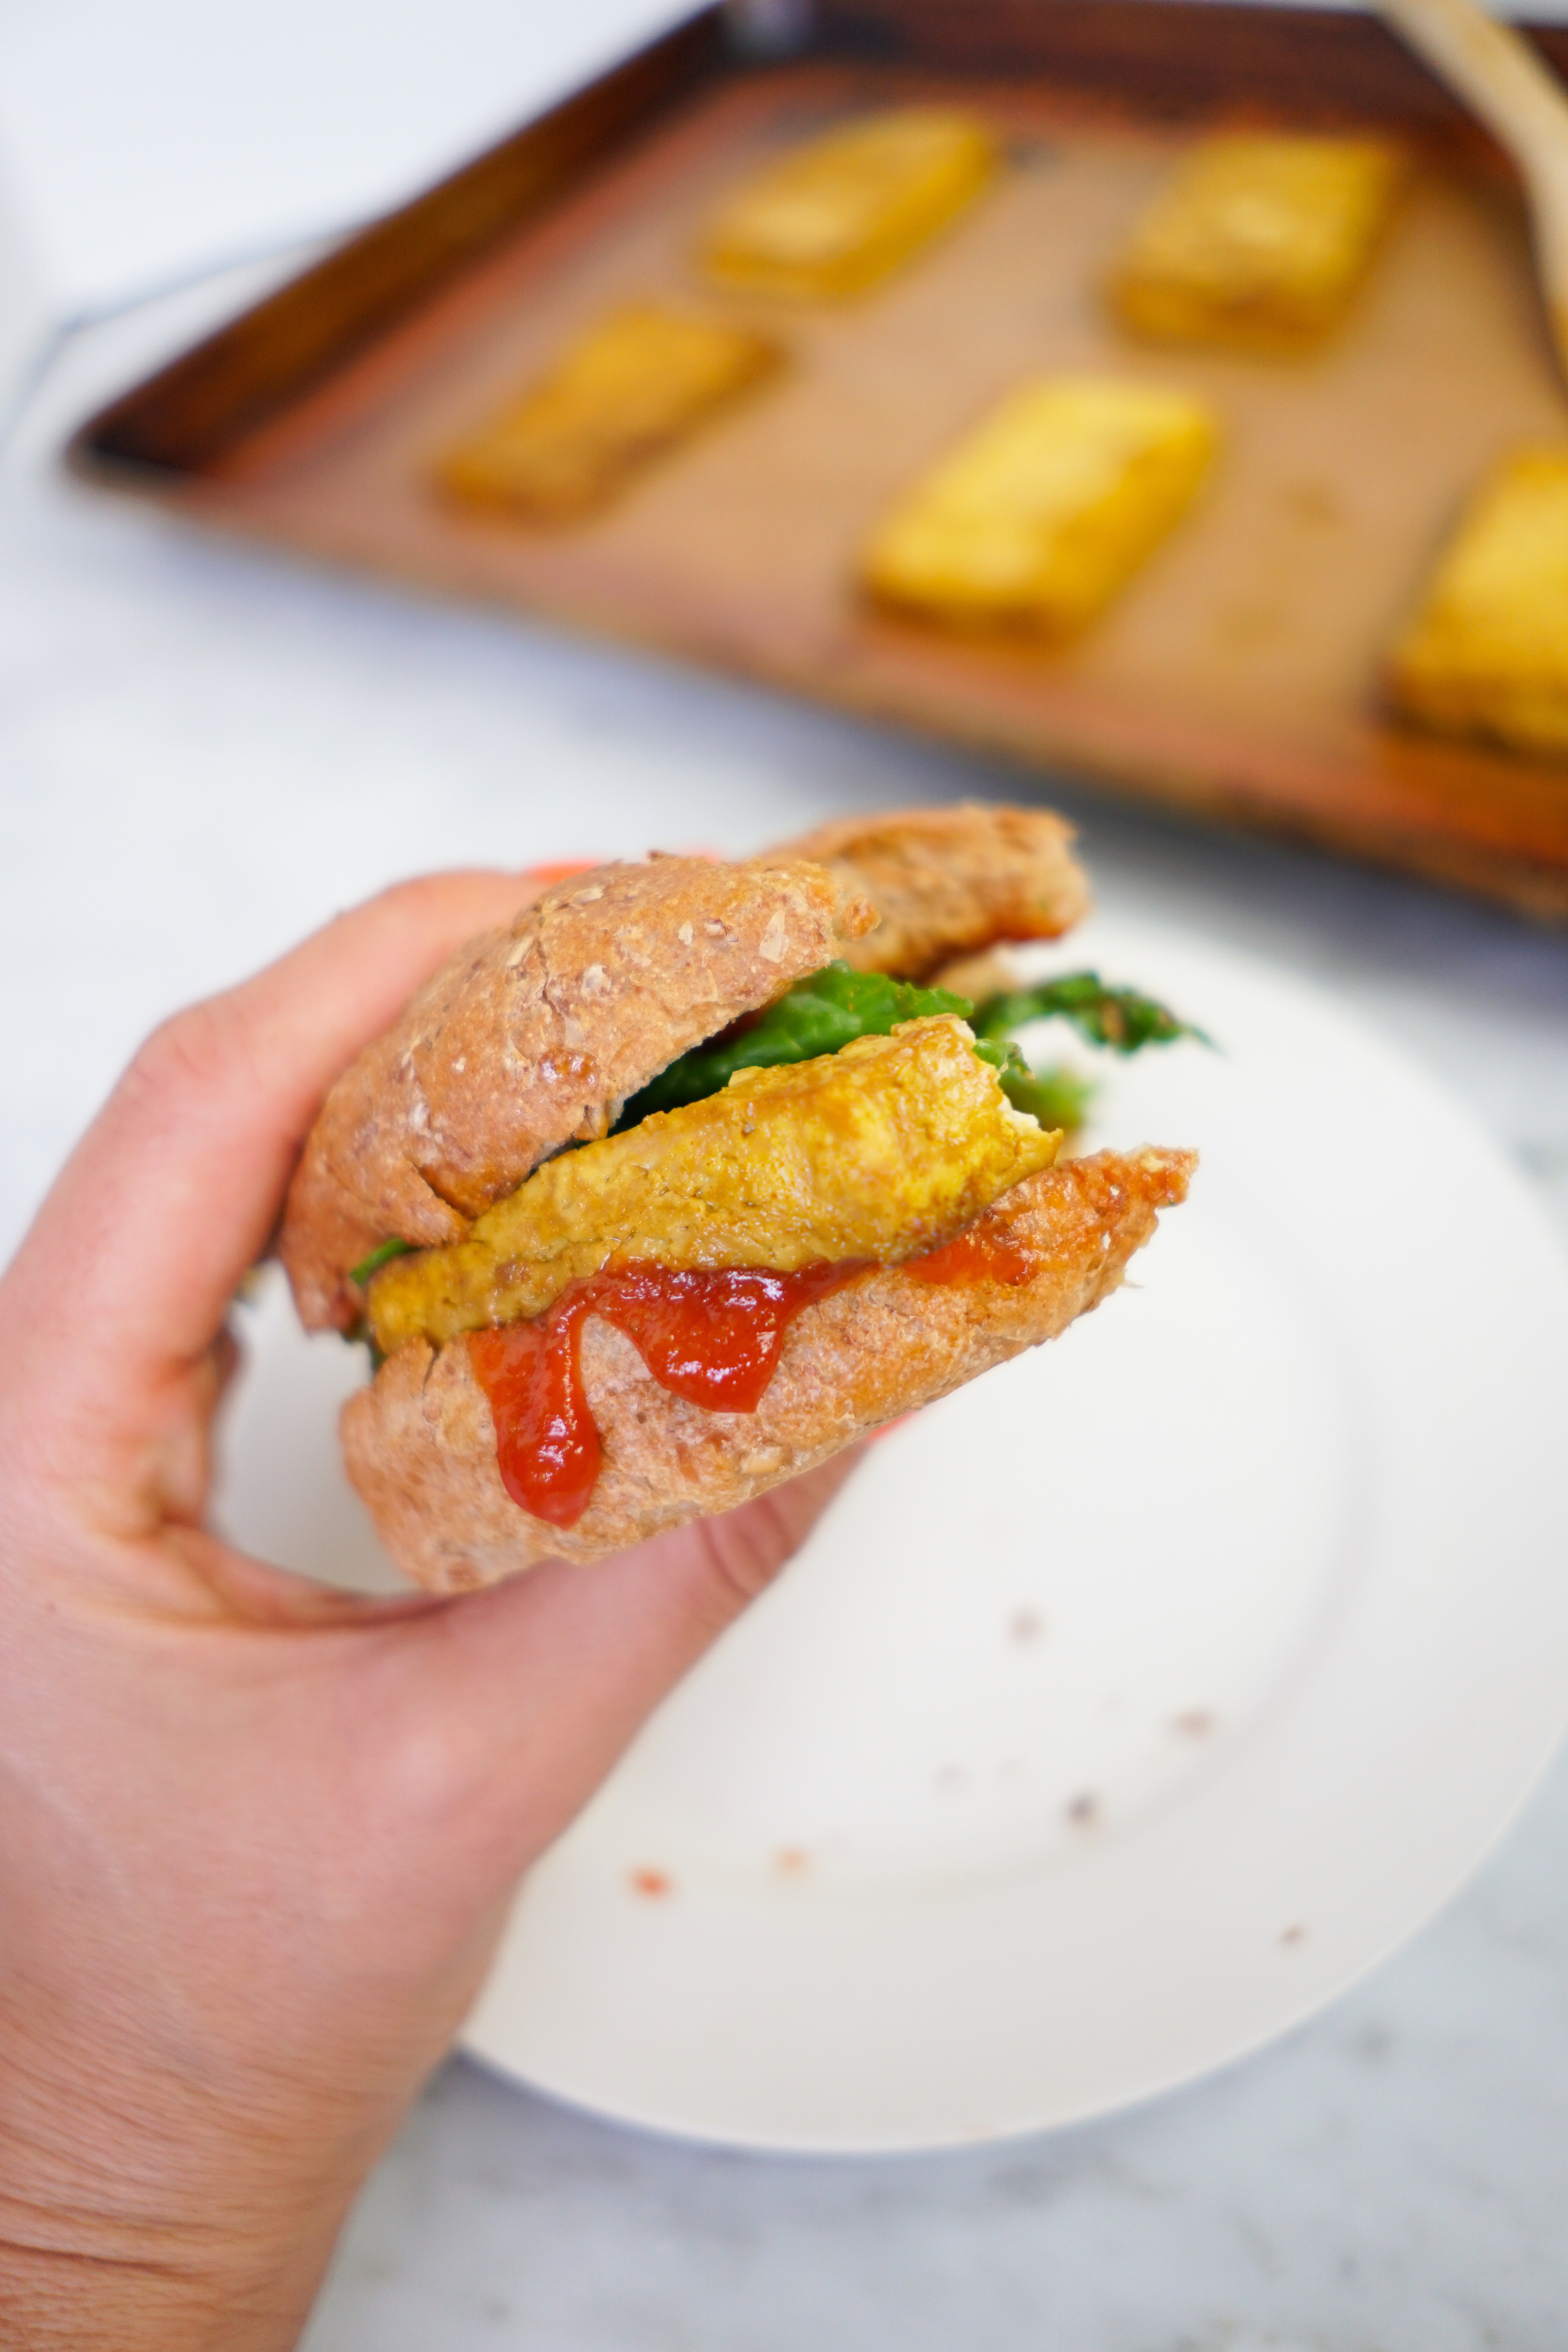 vegan tofu egg sandwich with a bite